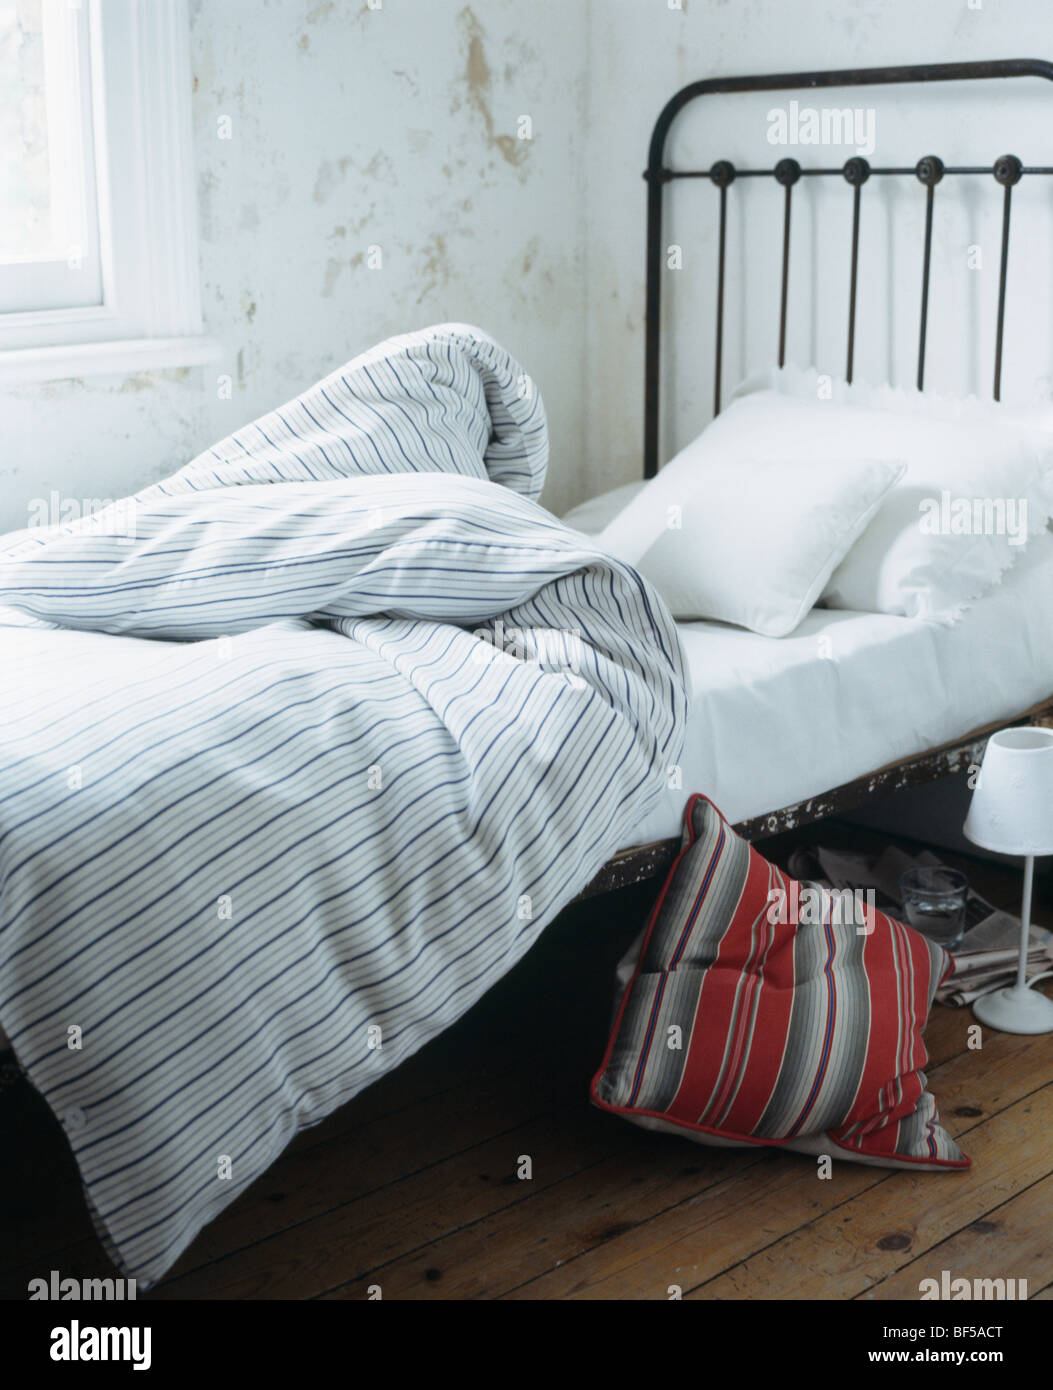 Wrought iron single bed - Stock Photo Striped Duvet On Wrought Iron Single Bed In Cottage Bedroom With White Stone Walls